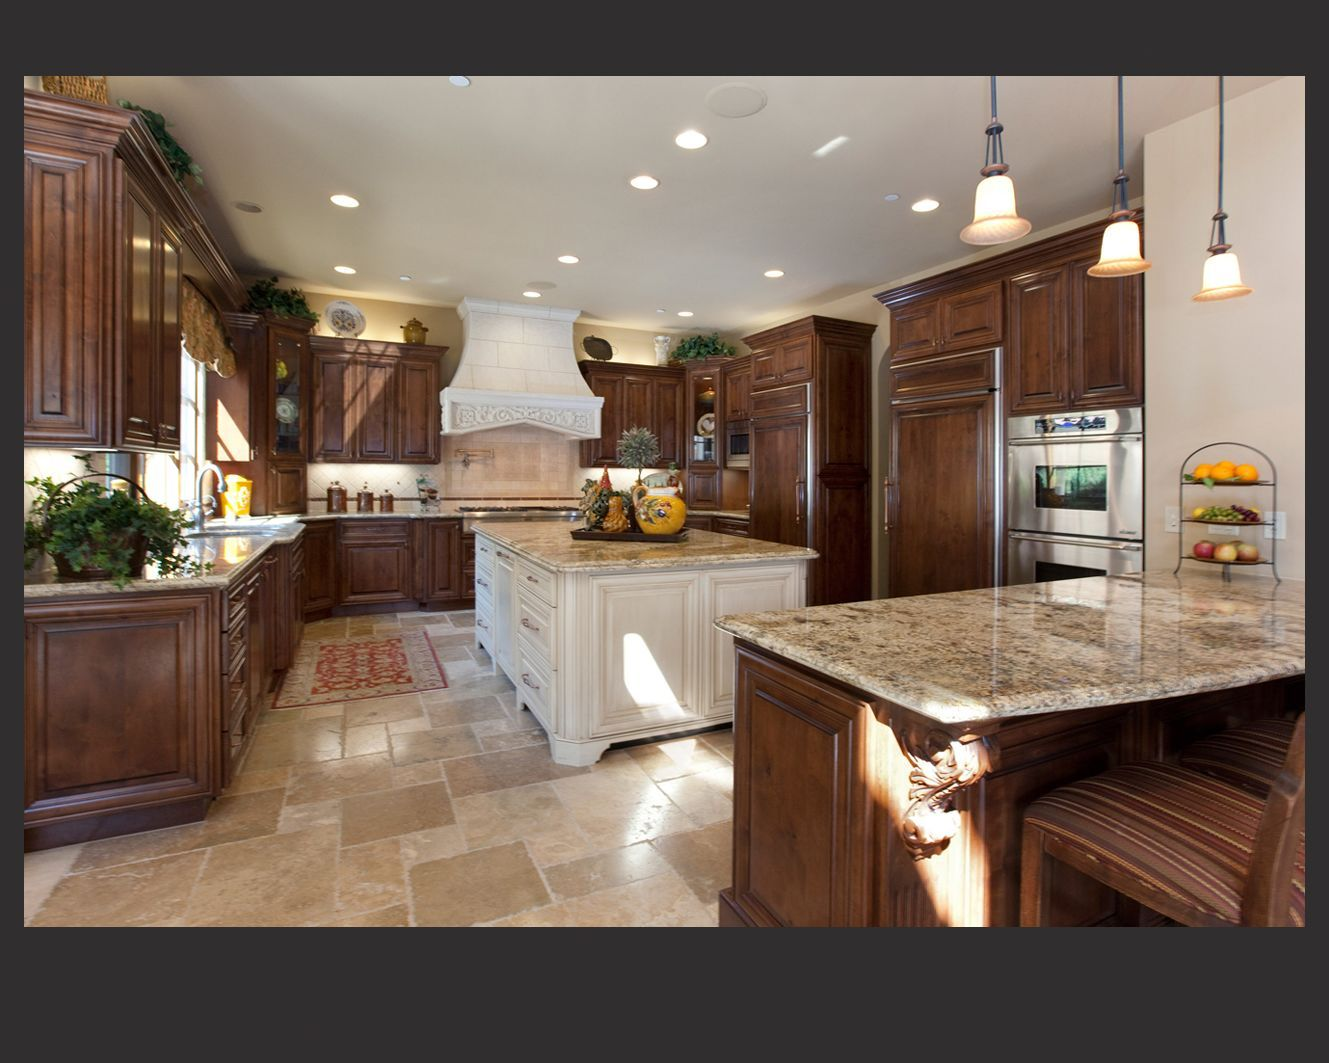 52 Dark Kitchens With Dark Wood Or Black Kitchen Cabinets 2021 Dark Brown Kitchen Cabinets Brown Kitchen Cabinets Dark Wood Kitchen Cabinets